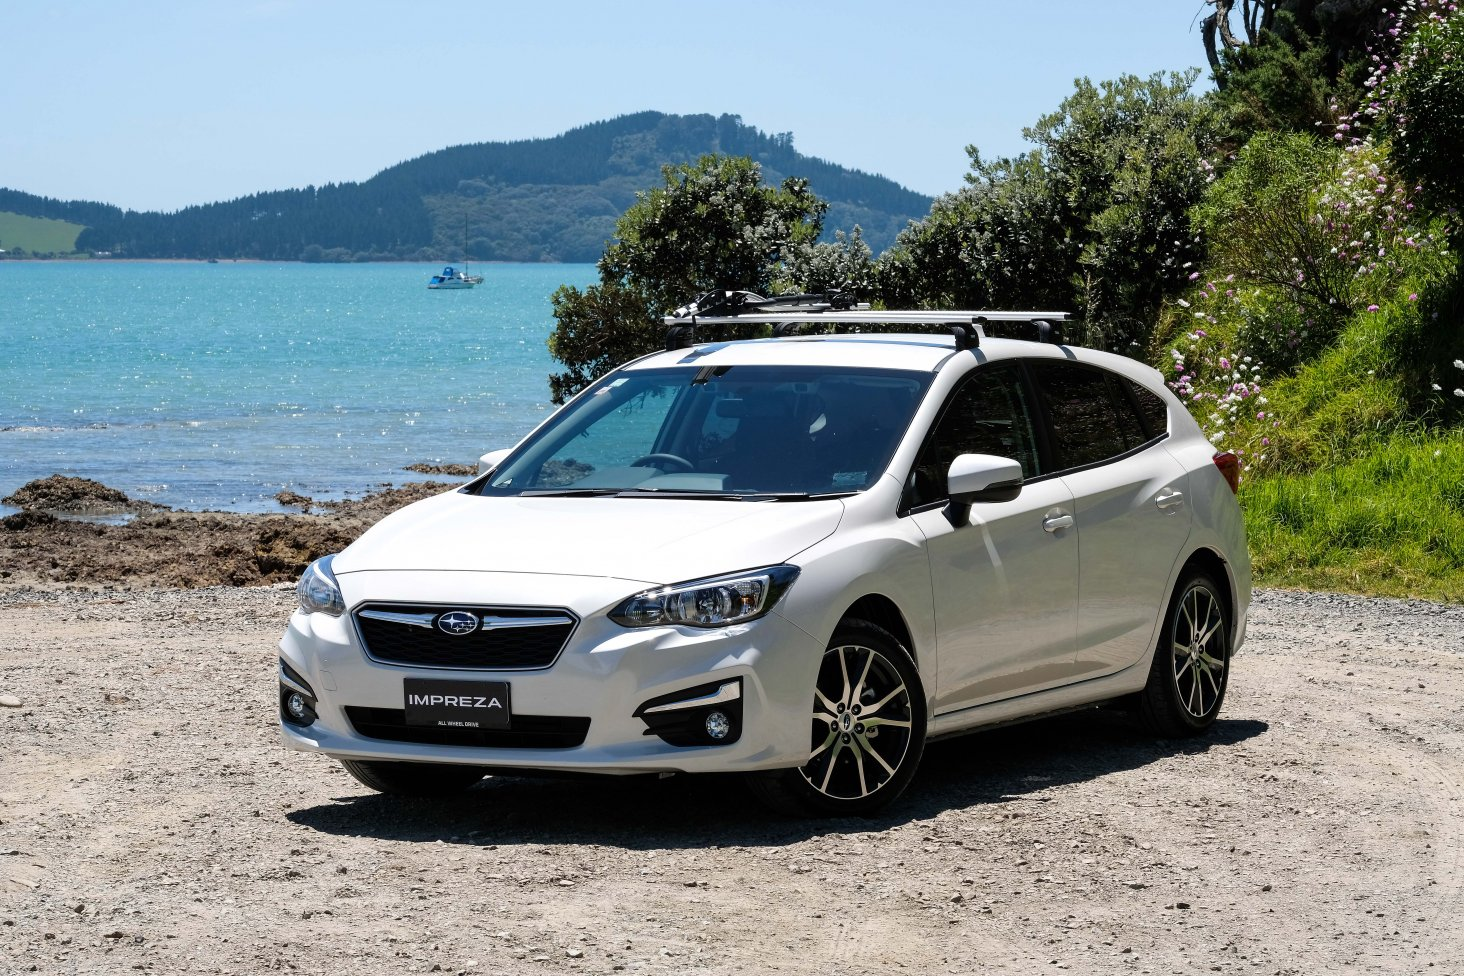 Subaru of New Zealand has secured secured another 100 Impreza 2.0 Sports to arrive by the end of the year.